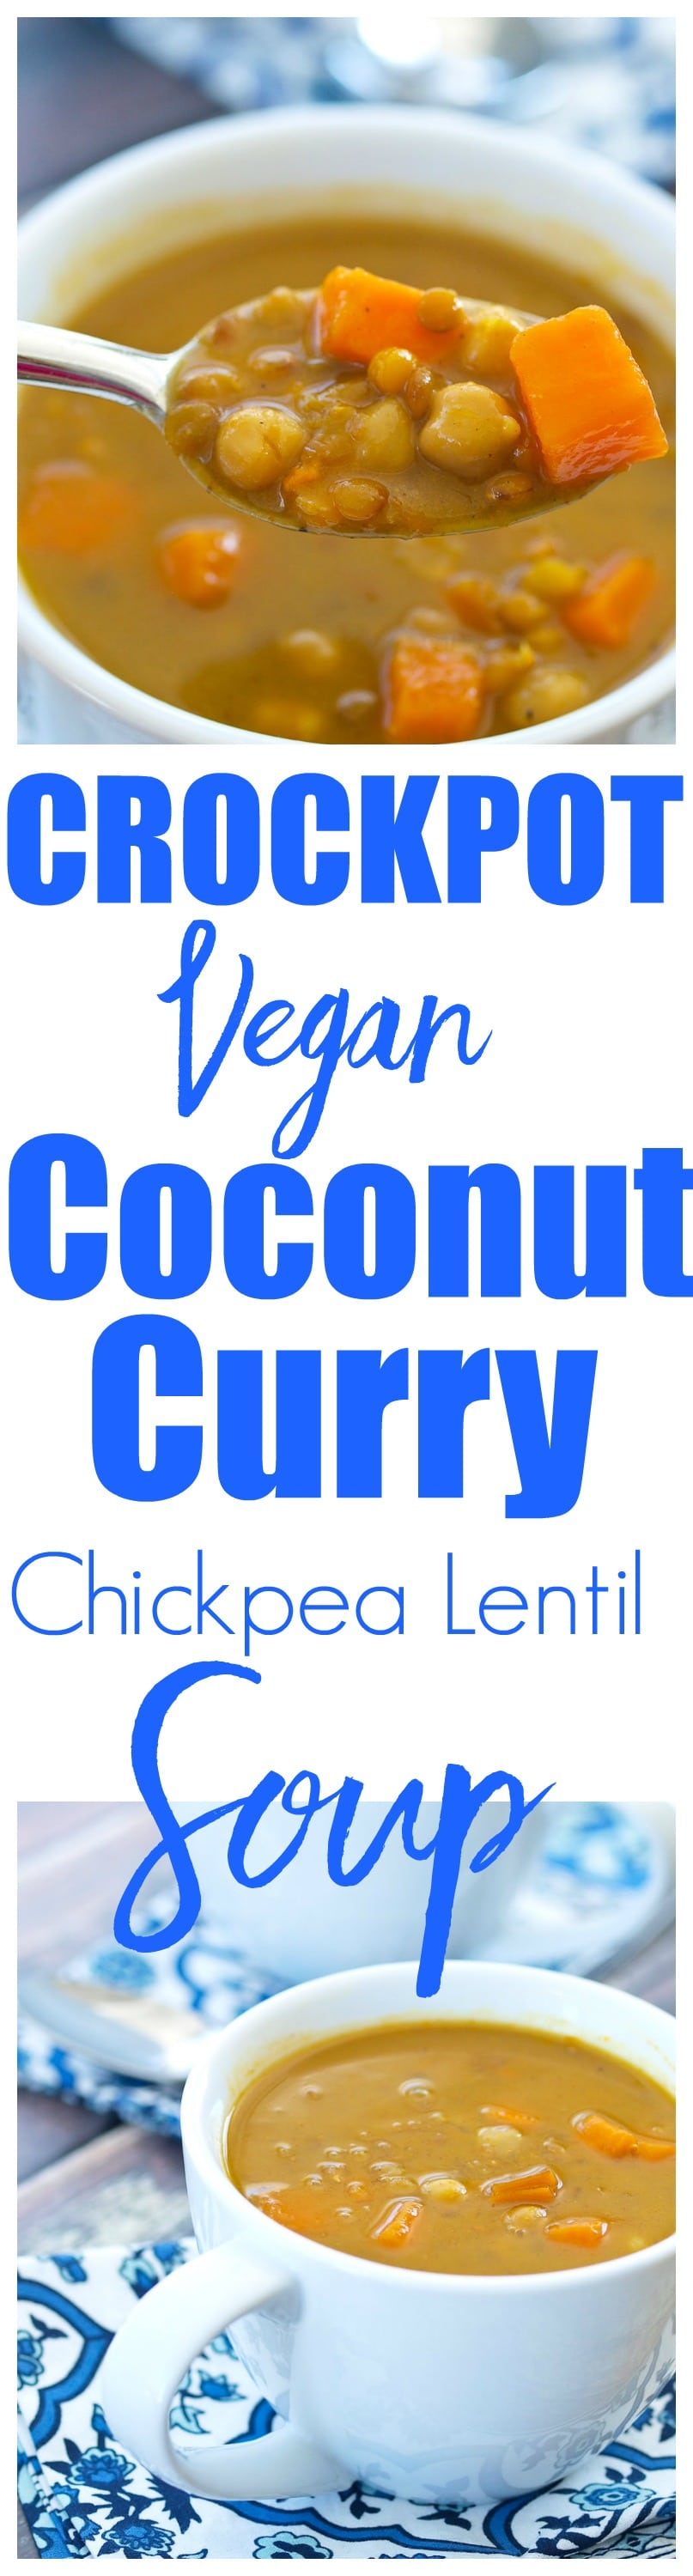 Crockpot Vegan Coconut Curry Chickpea Lentil Soup recipe. Crockpot soup recipes are my favorite! This is a healthy and easy dinner or lunch recipe the whole family loves.